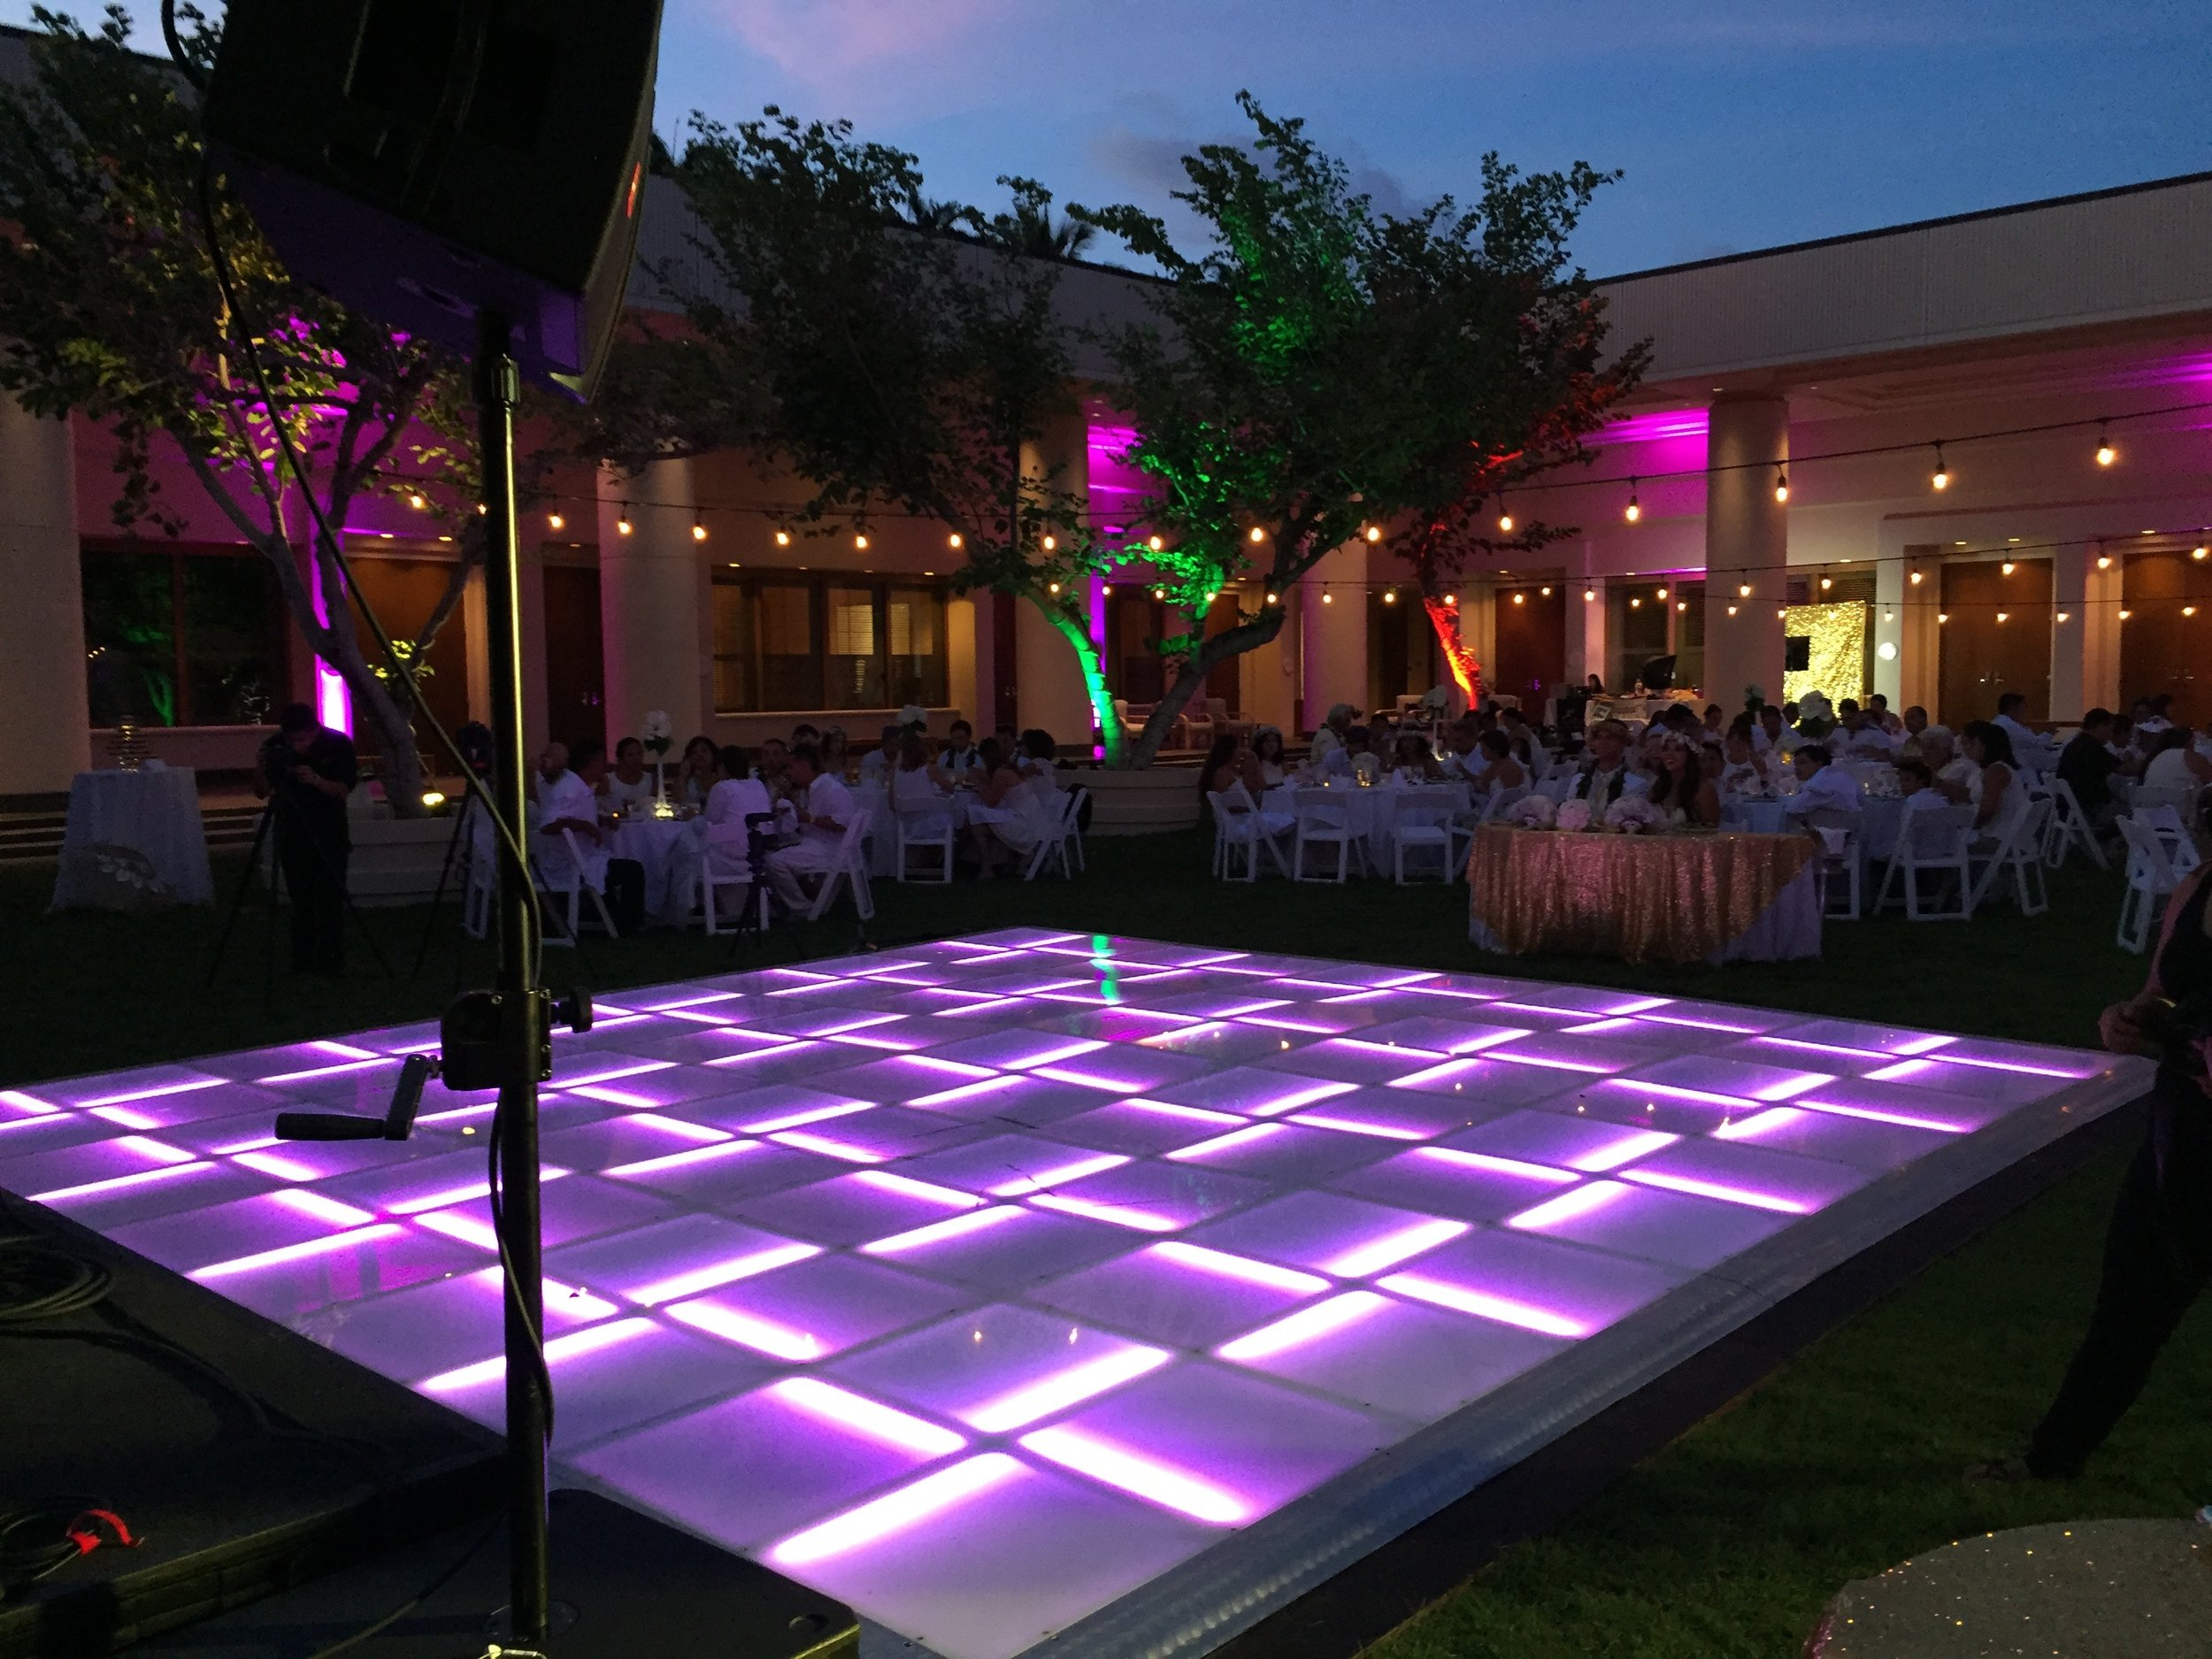 LED Lighted Dance Floor for a wedding at the Courtyard at the beautiful  Hapuna Beach Hotel .